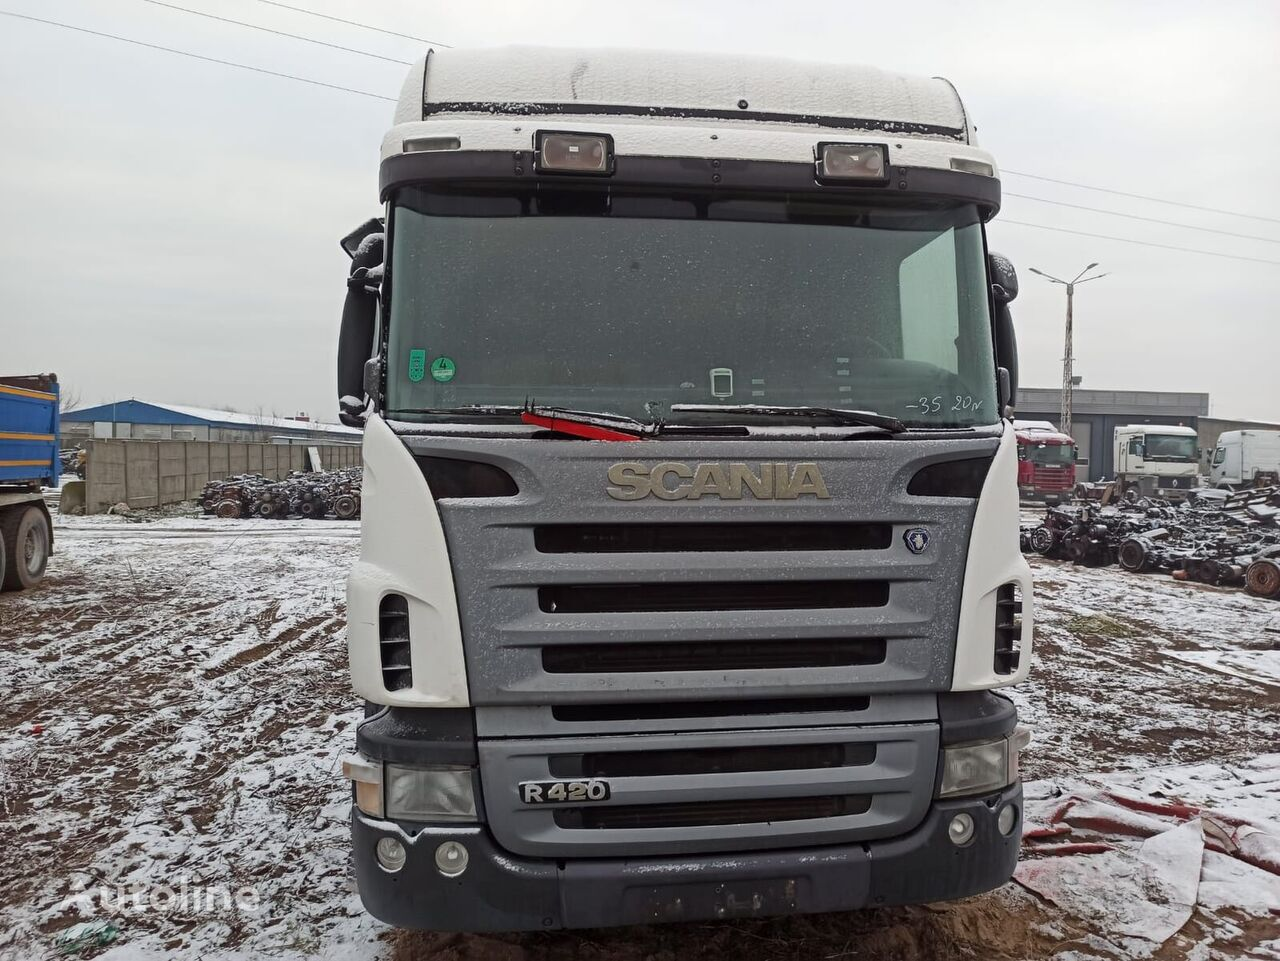 SCANIA 124R 420KM MANUAL tractora